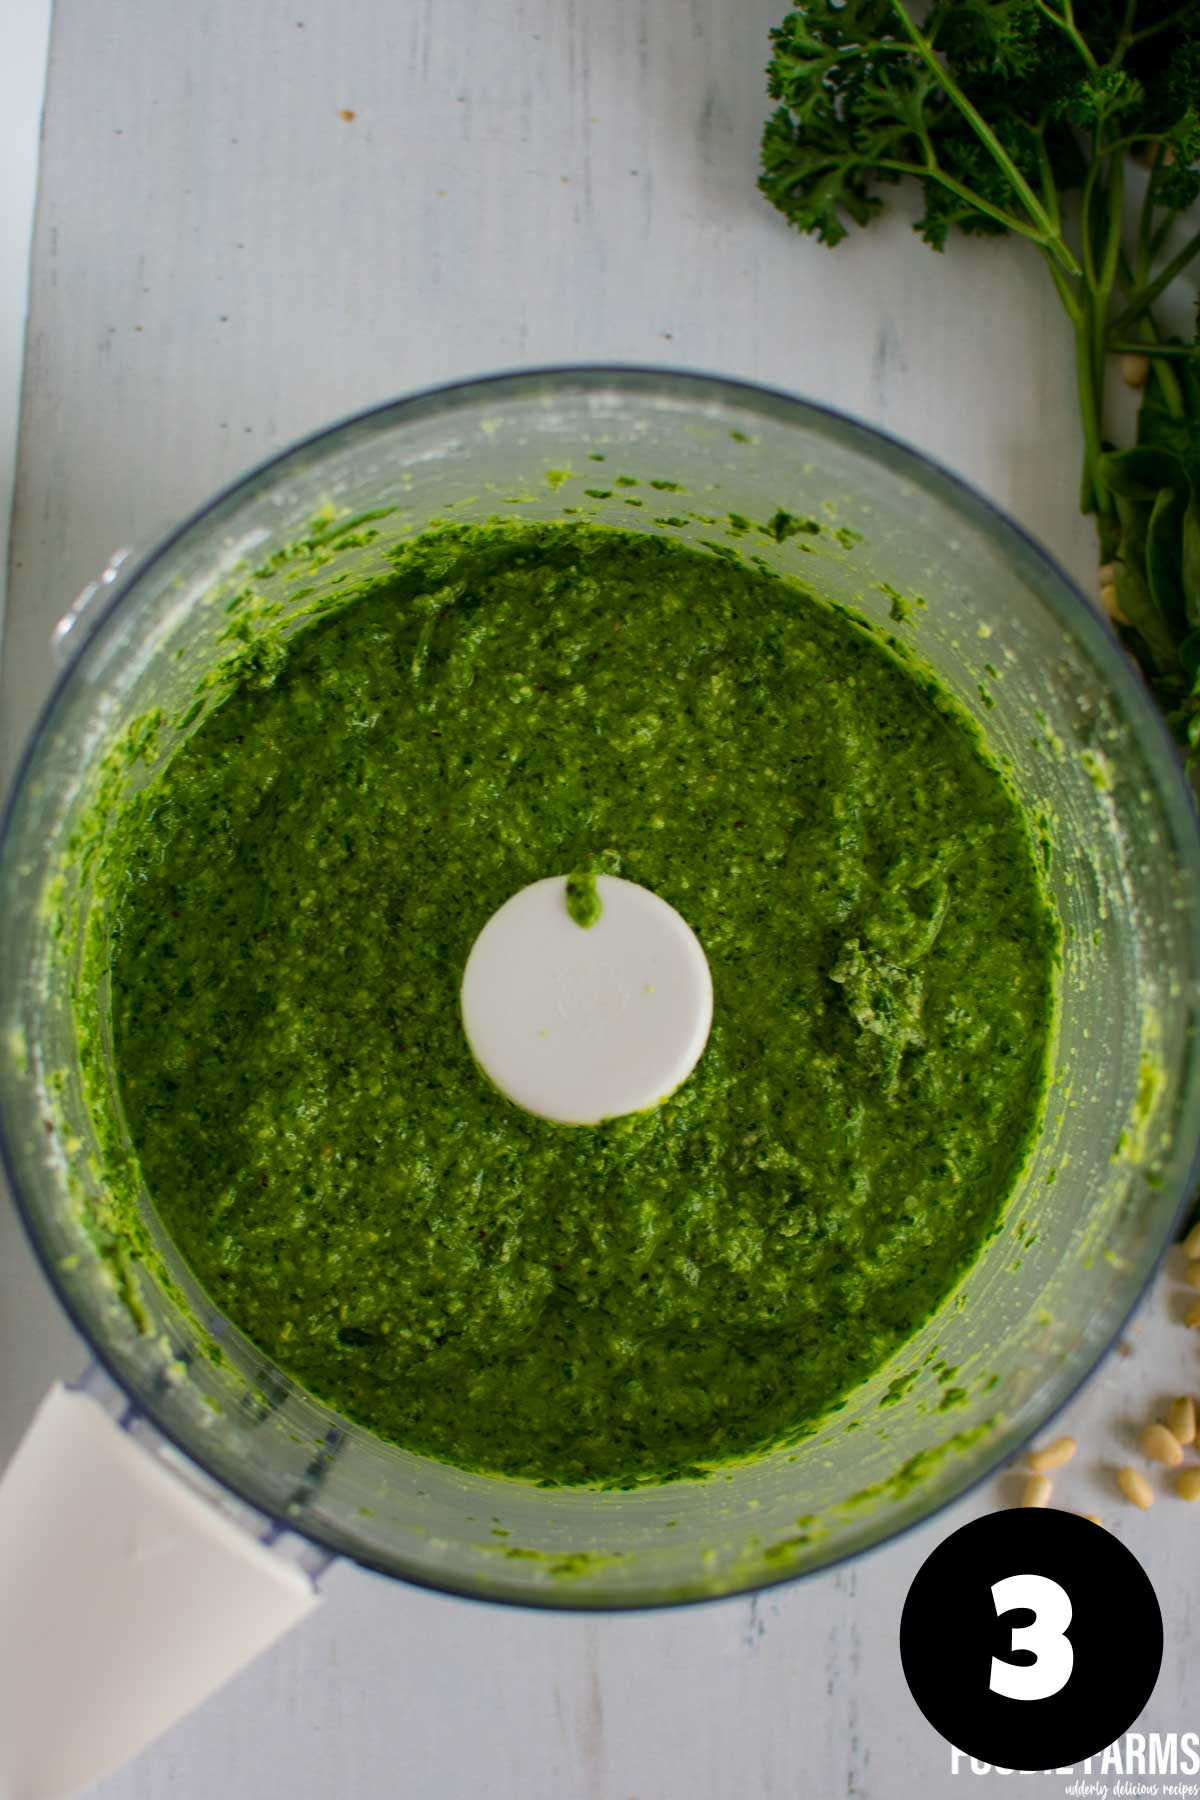 Blended pesto sauce in a food processor bowl.